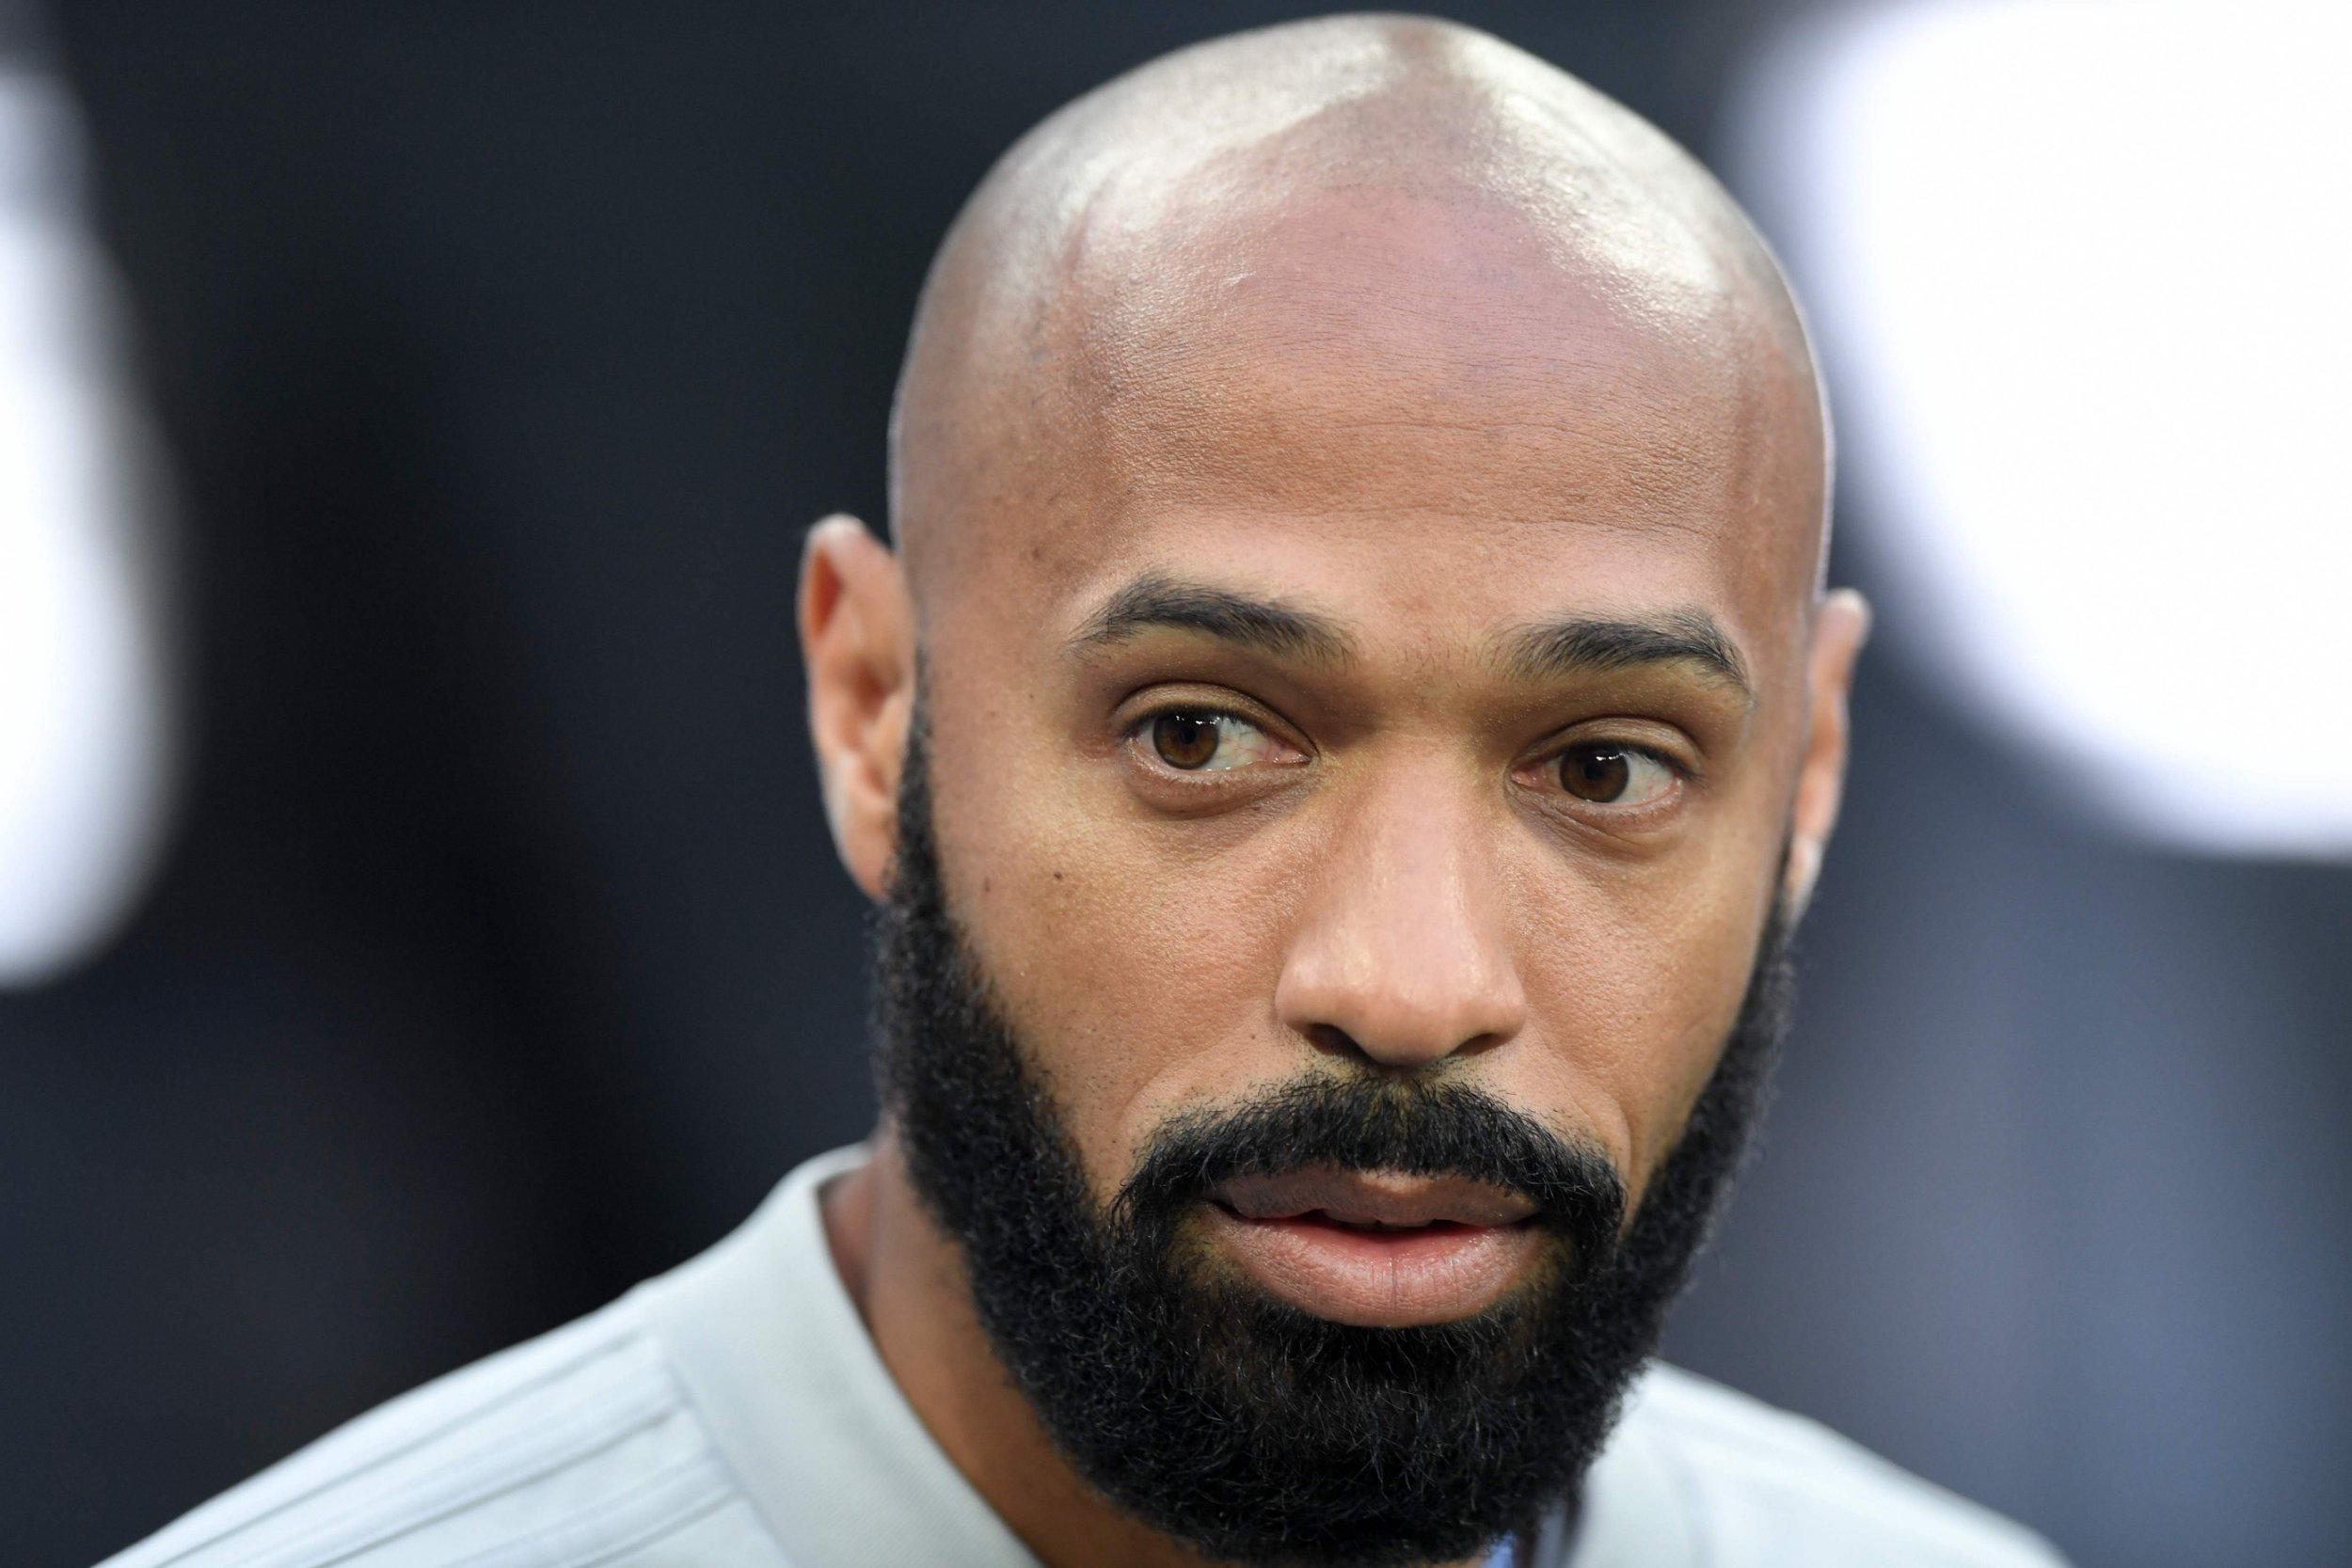 Belgium's assistant coach Thierry Henry looks on during the Russia 2018 World Cup semi-final football match between France and Belgium at the Saint Petersburg Stadium in Saint Petersburg on July 10, 2018. / AFP PHOTO / GABRIEL BOUYS / RESTRICTED TO EDITORIAL USE - NO MOBILE PUSH ALERTS/DOWNLOADS GABRIEL BOUYS/AFP/Getty Images